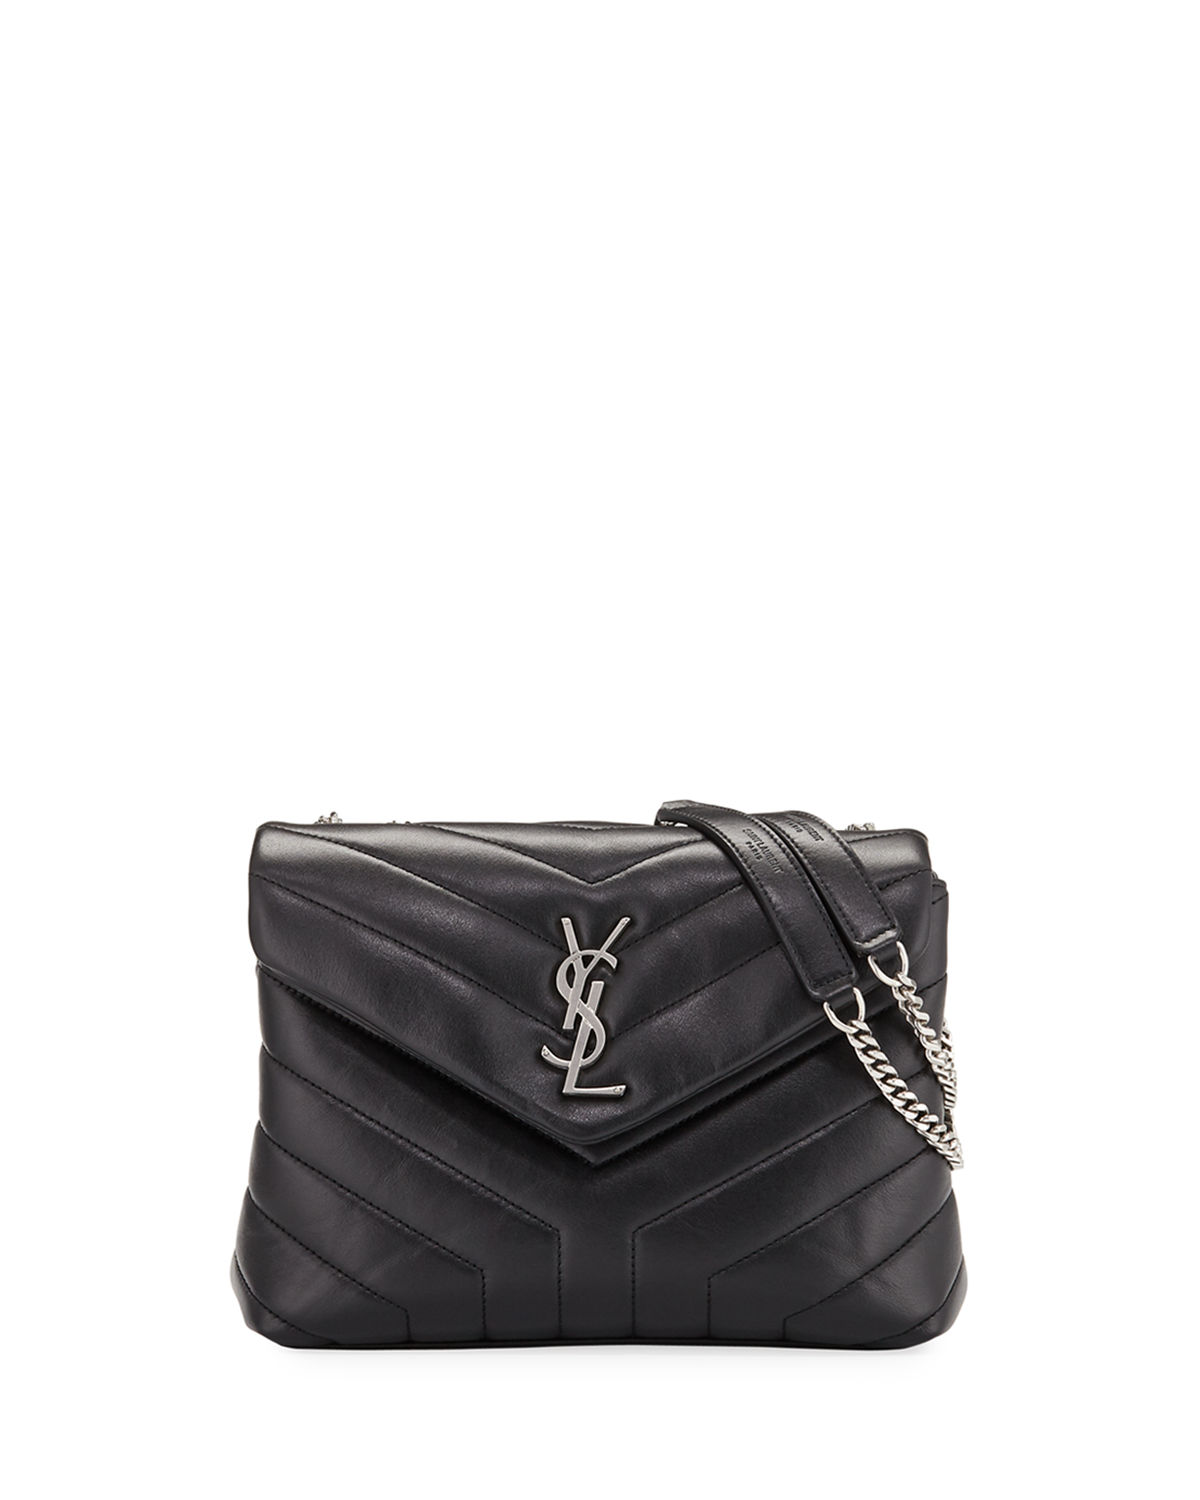 0120ba9cbf6 Saint Laurent Loulou Monogram YSL Small Chain Bag | Neiman Marcus